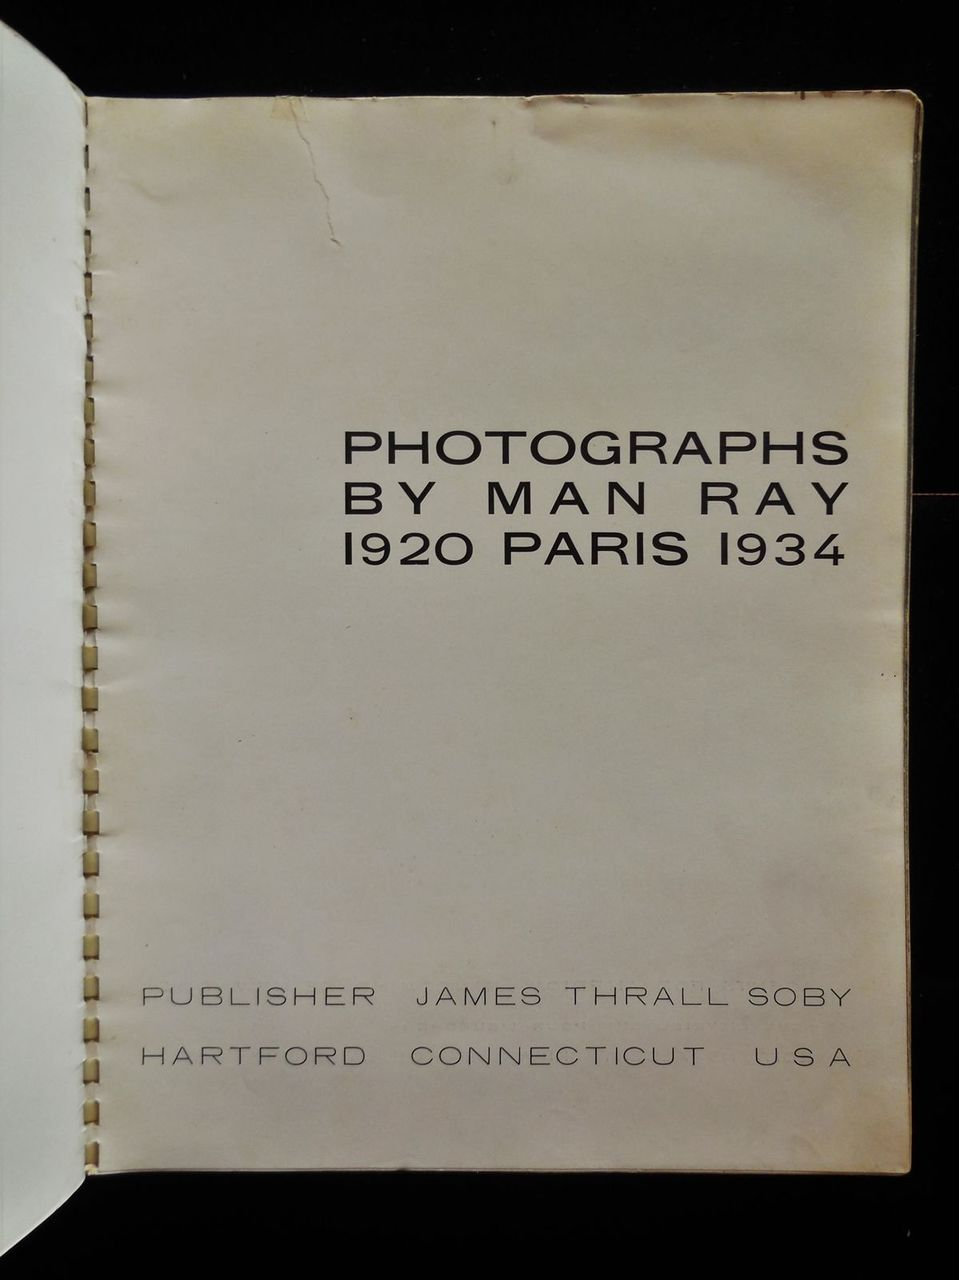 MAN RAY, his first photography book - 1934 [1st Ed]